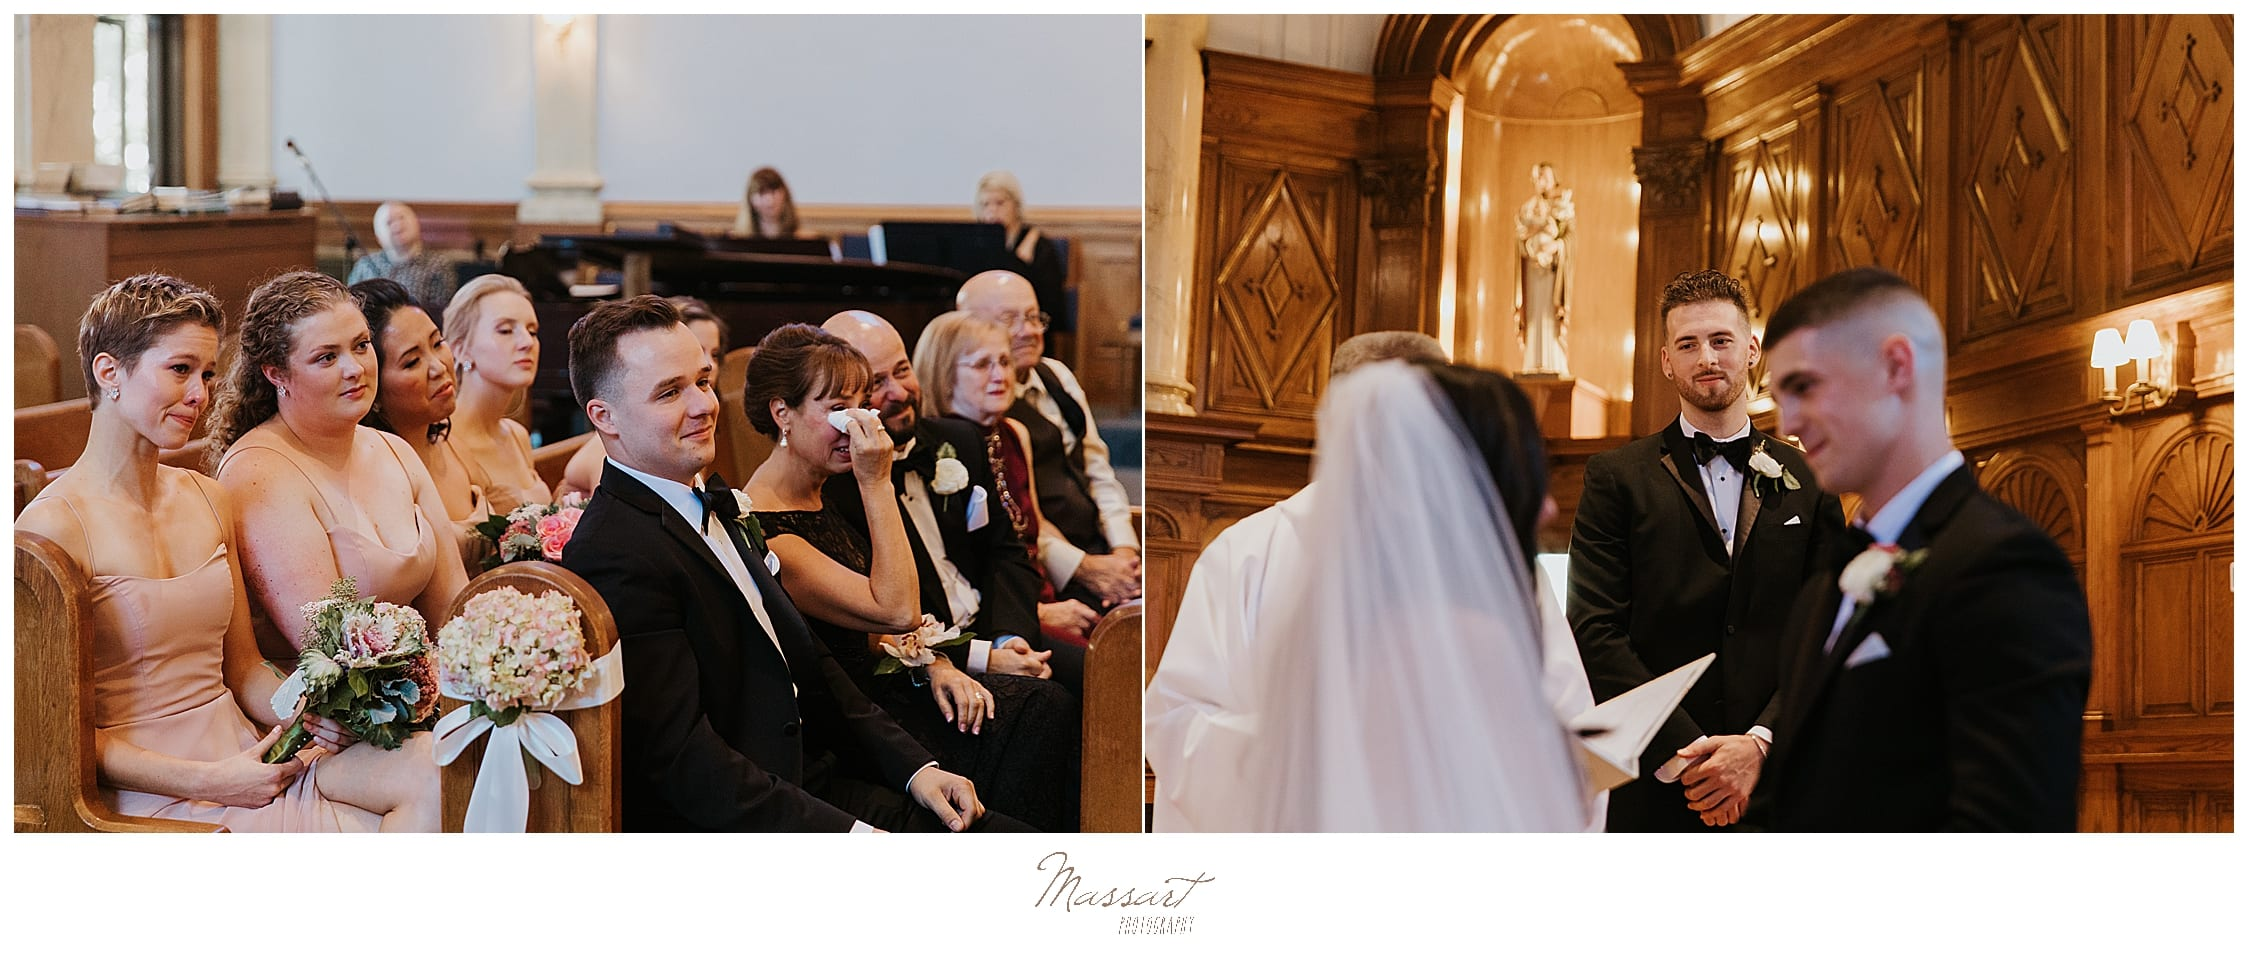 church wedding photographed by wedding photographers Massart Photography